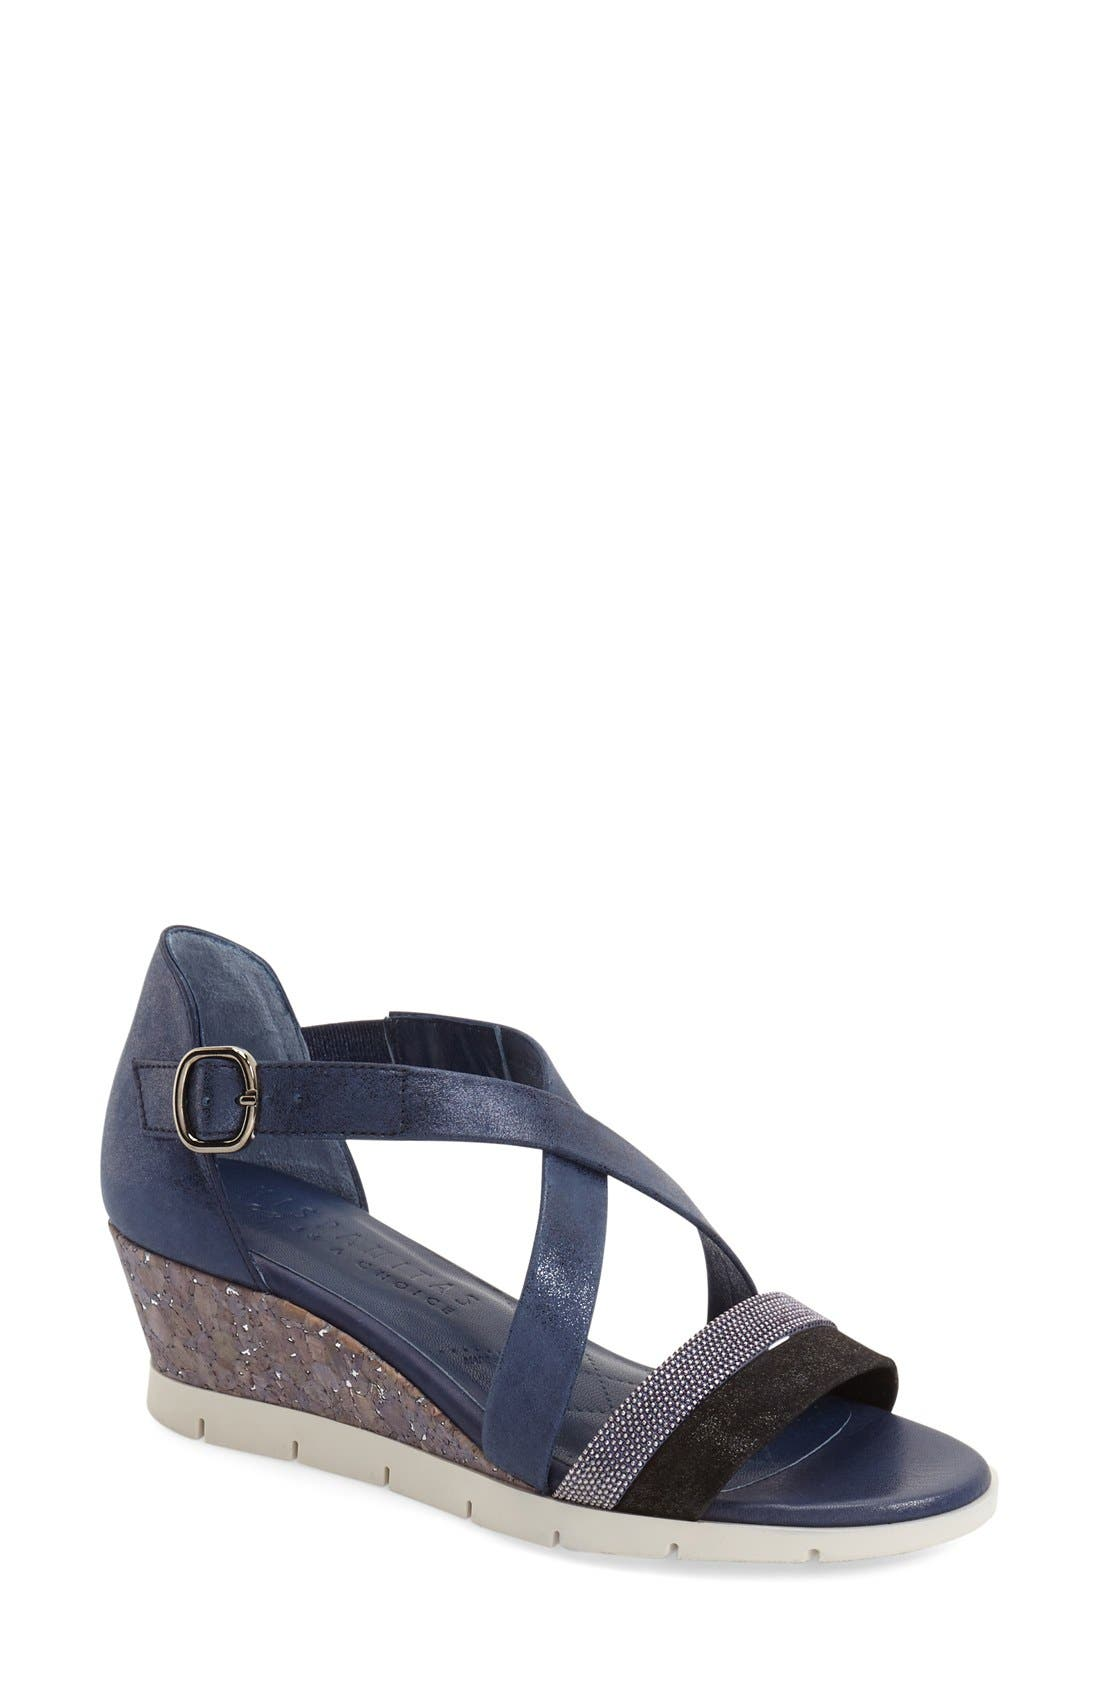 'Kennedi' Wedge Sandal,                             Main thumbnail 1, color,                             Jeans Leather